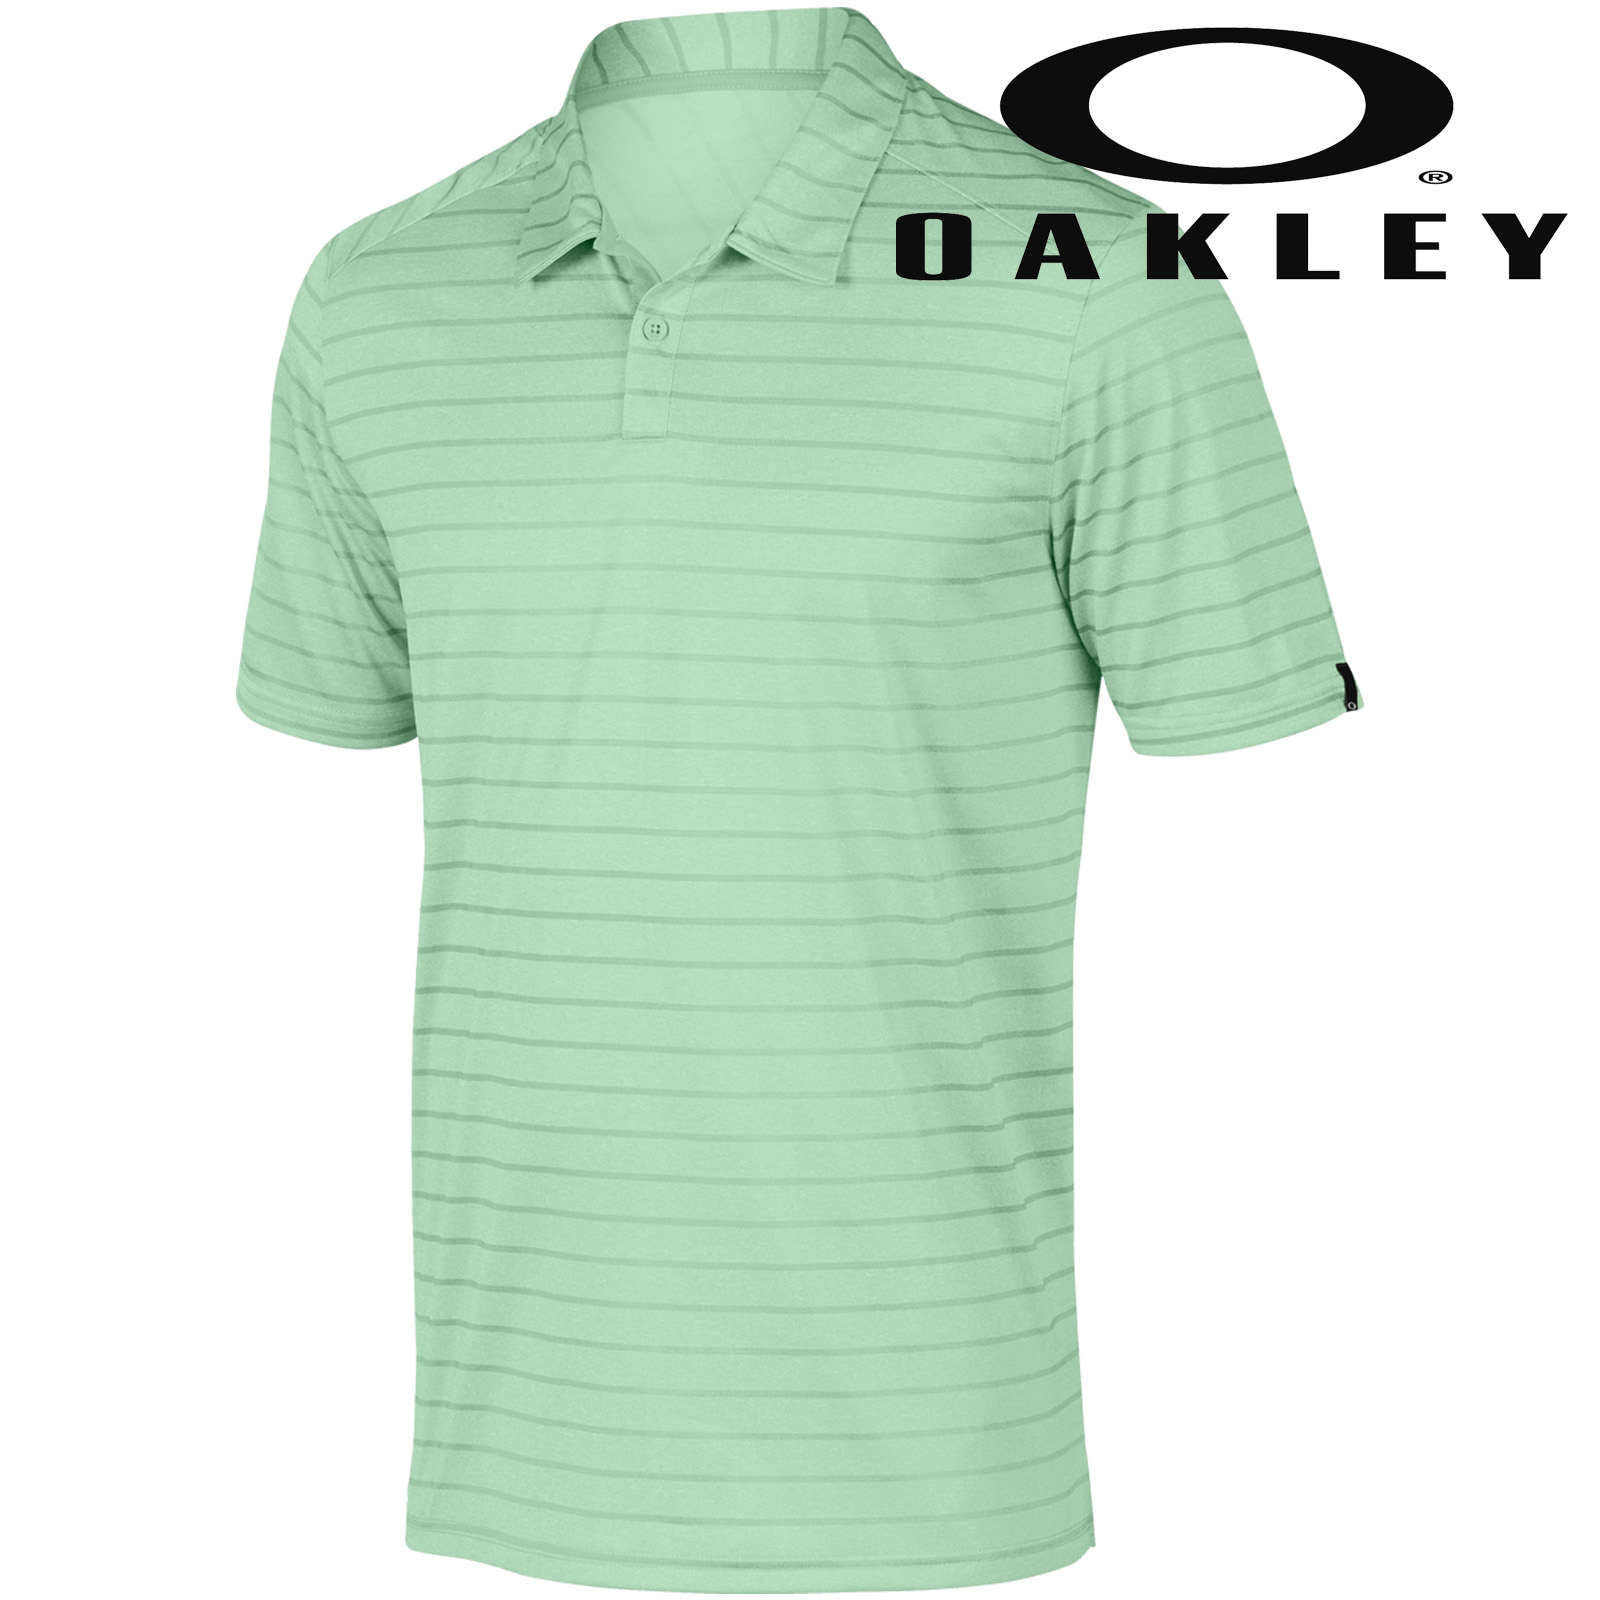 1ef951a1cb Oakley 2017 Mens Top Stripe Performance Golf Polo Shirt